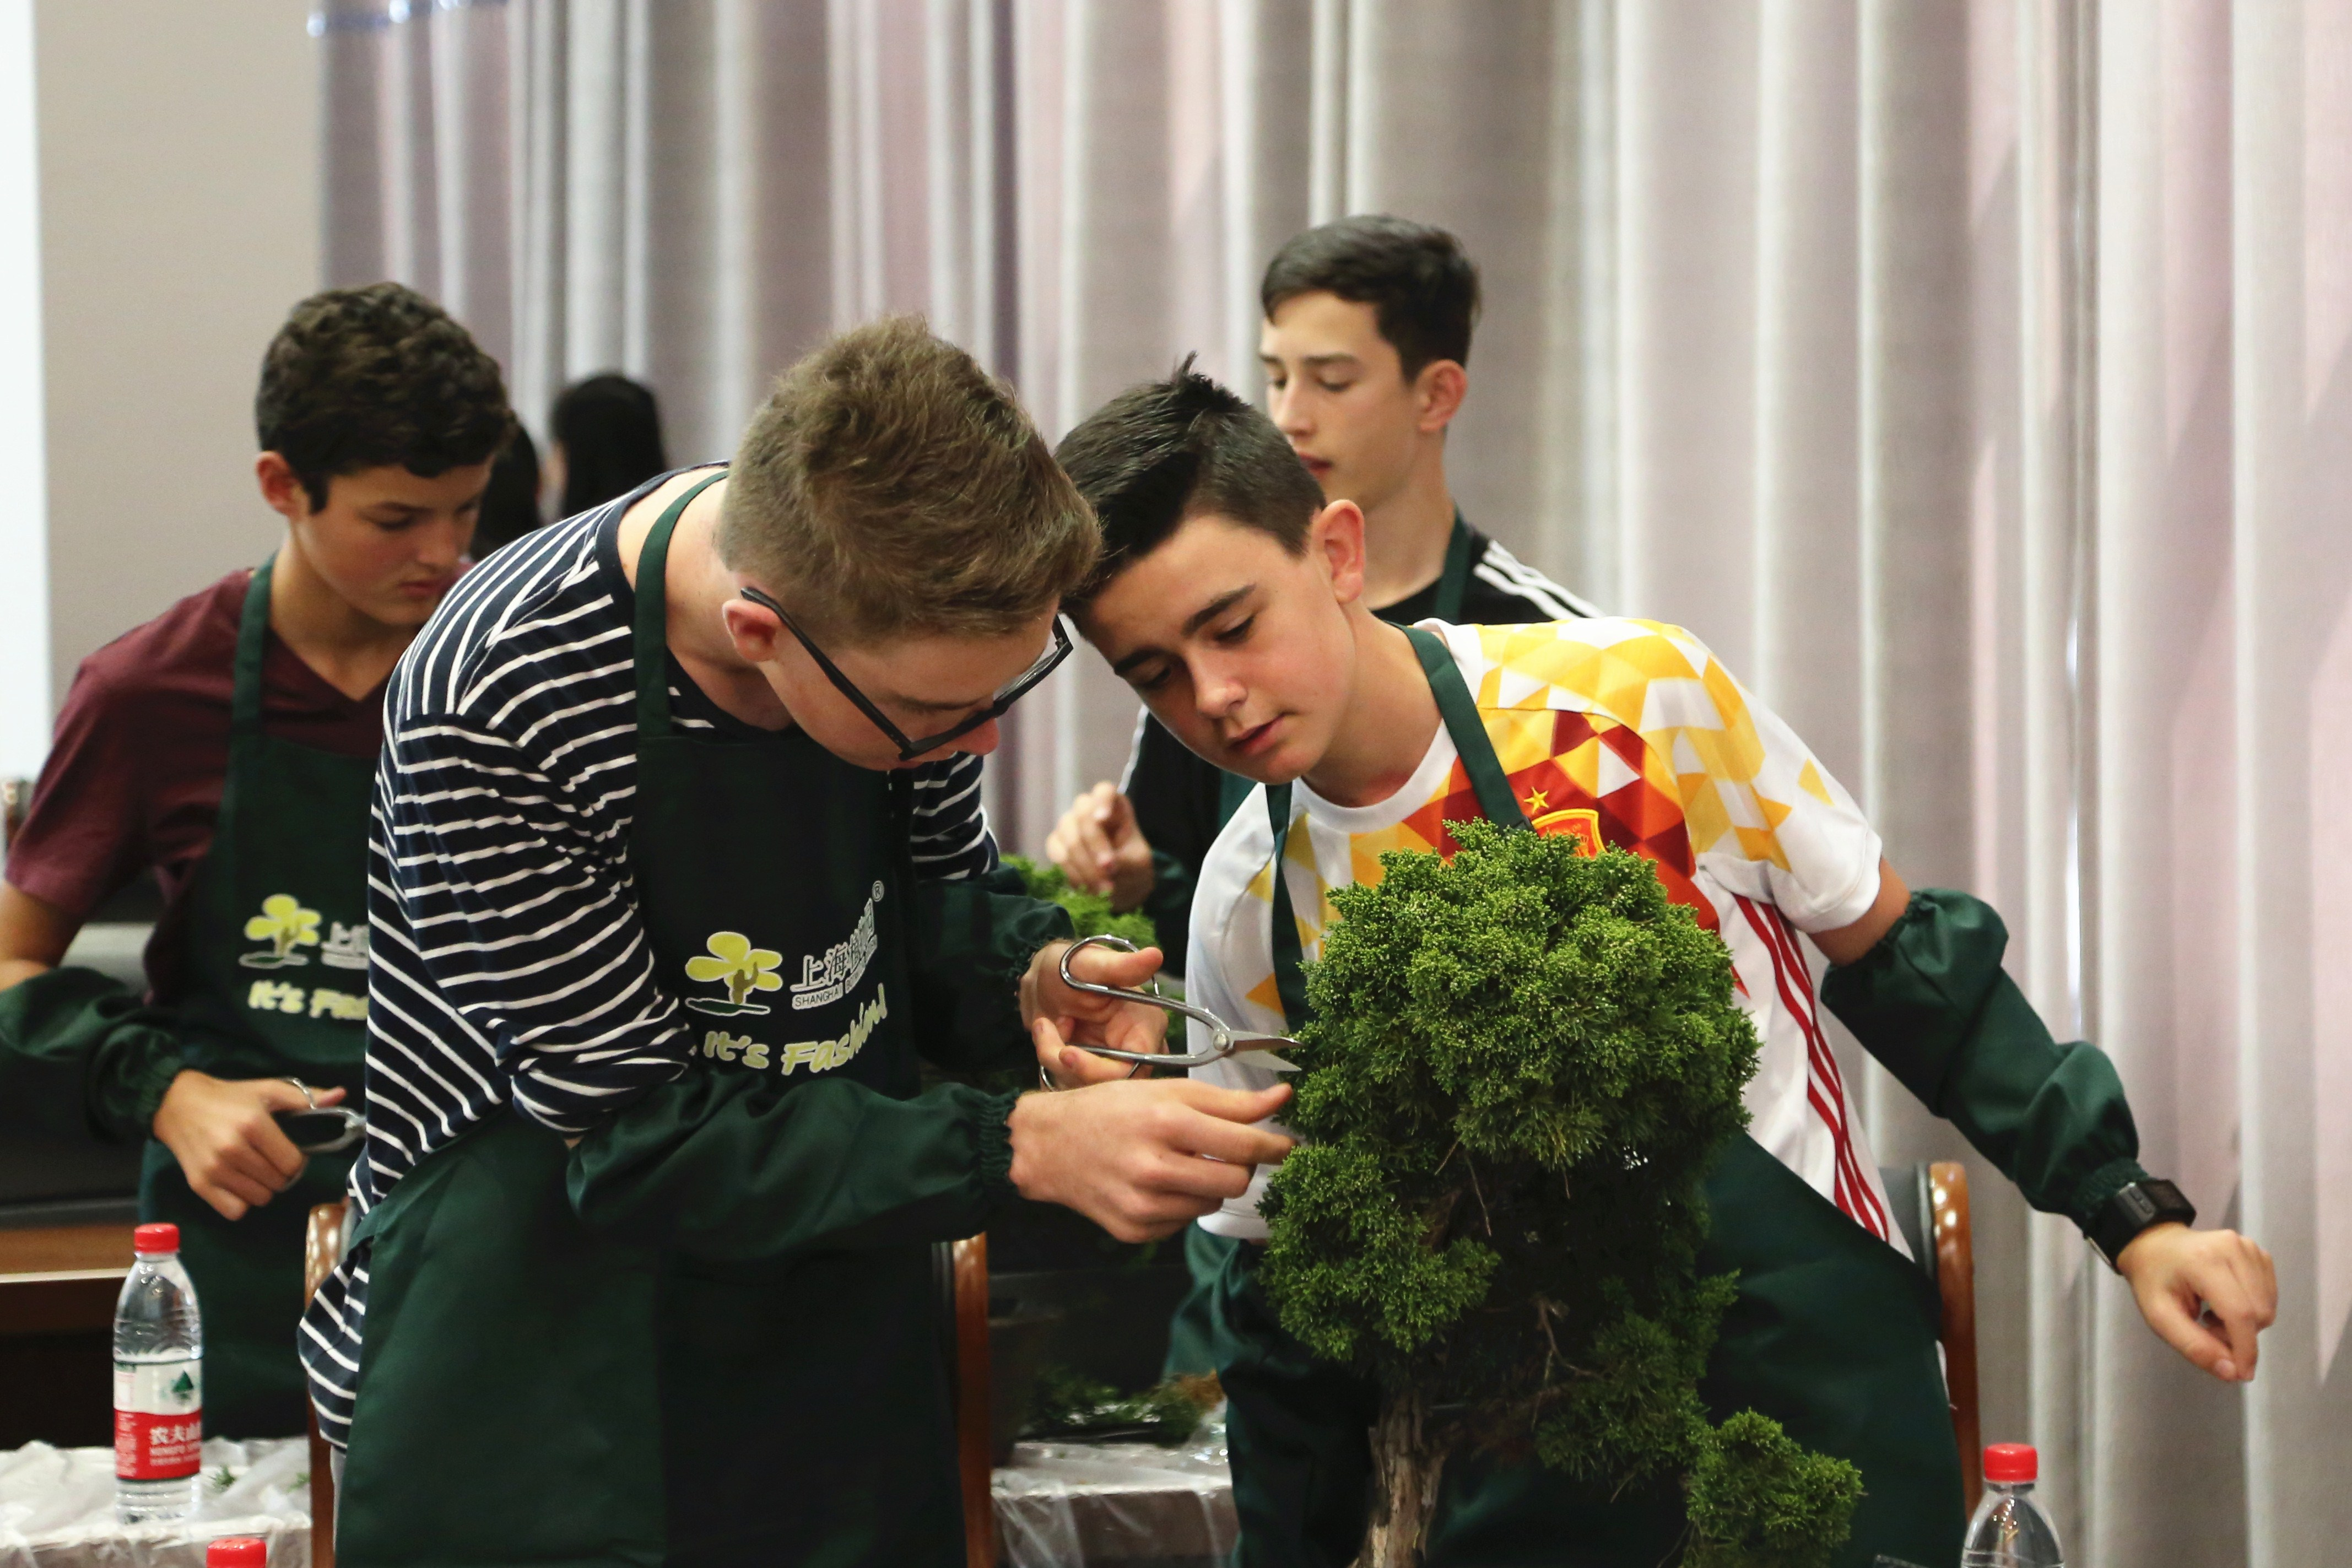 Twenty students from St Peter\'s School in New Zealand learn making bonsai at Shanghai Botanical Garden in Xuhui District. As part of a Chinese cultural experience program, they also learn tai chi at the garden.  -- Ti Gong